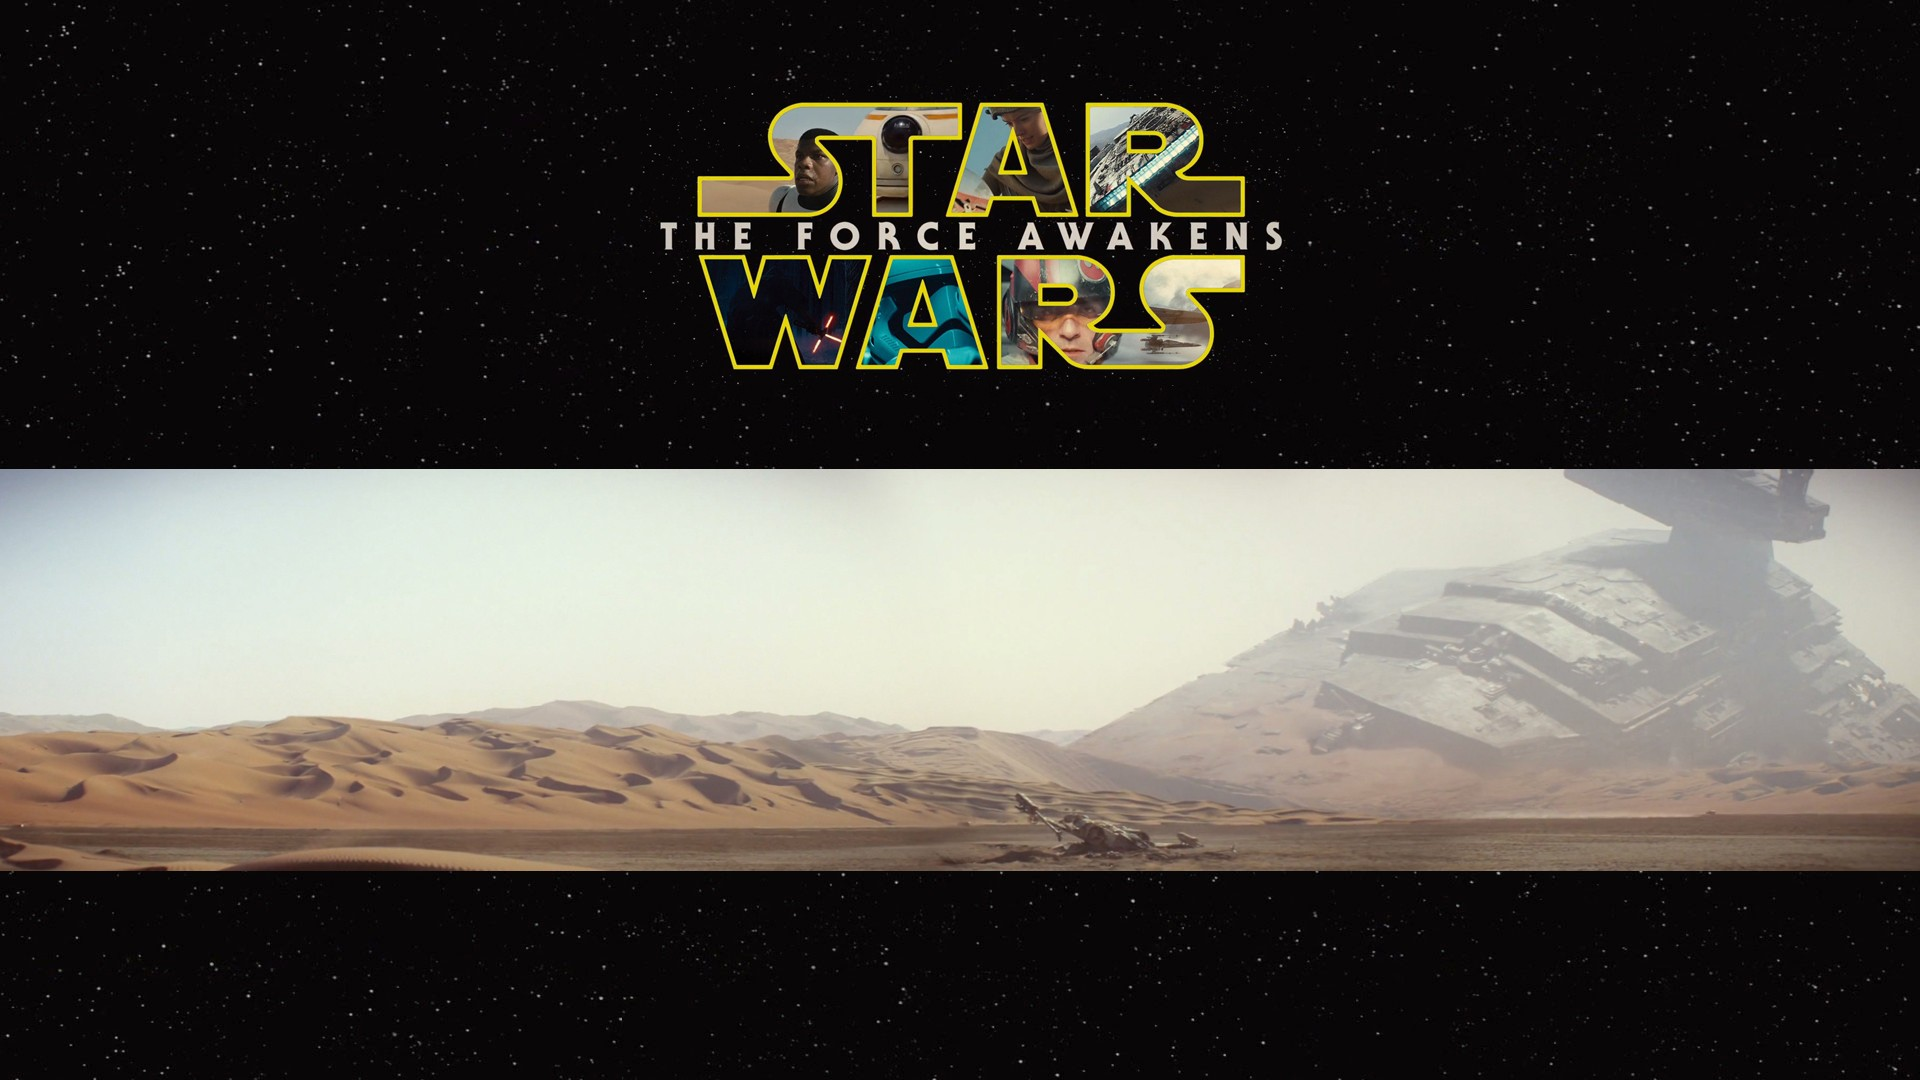 The Force Awakens Wallpaper 1920x1080 ·① Download Free